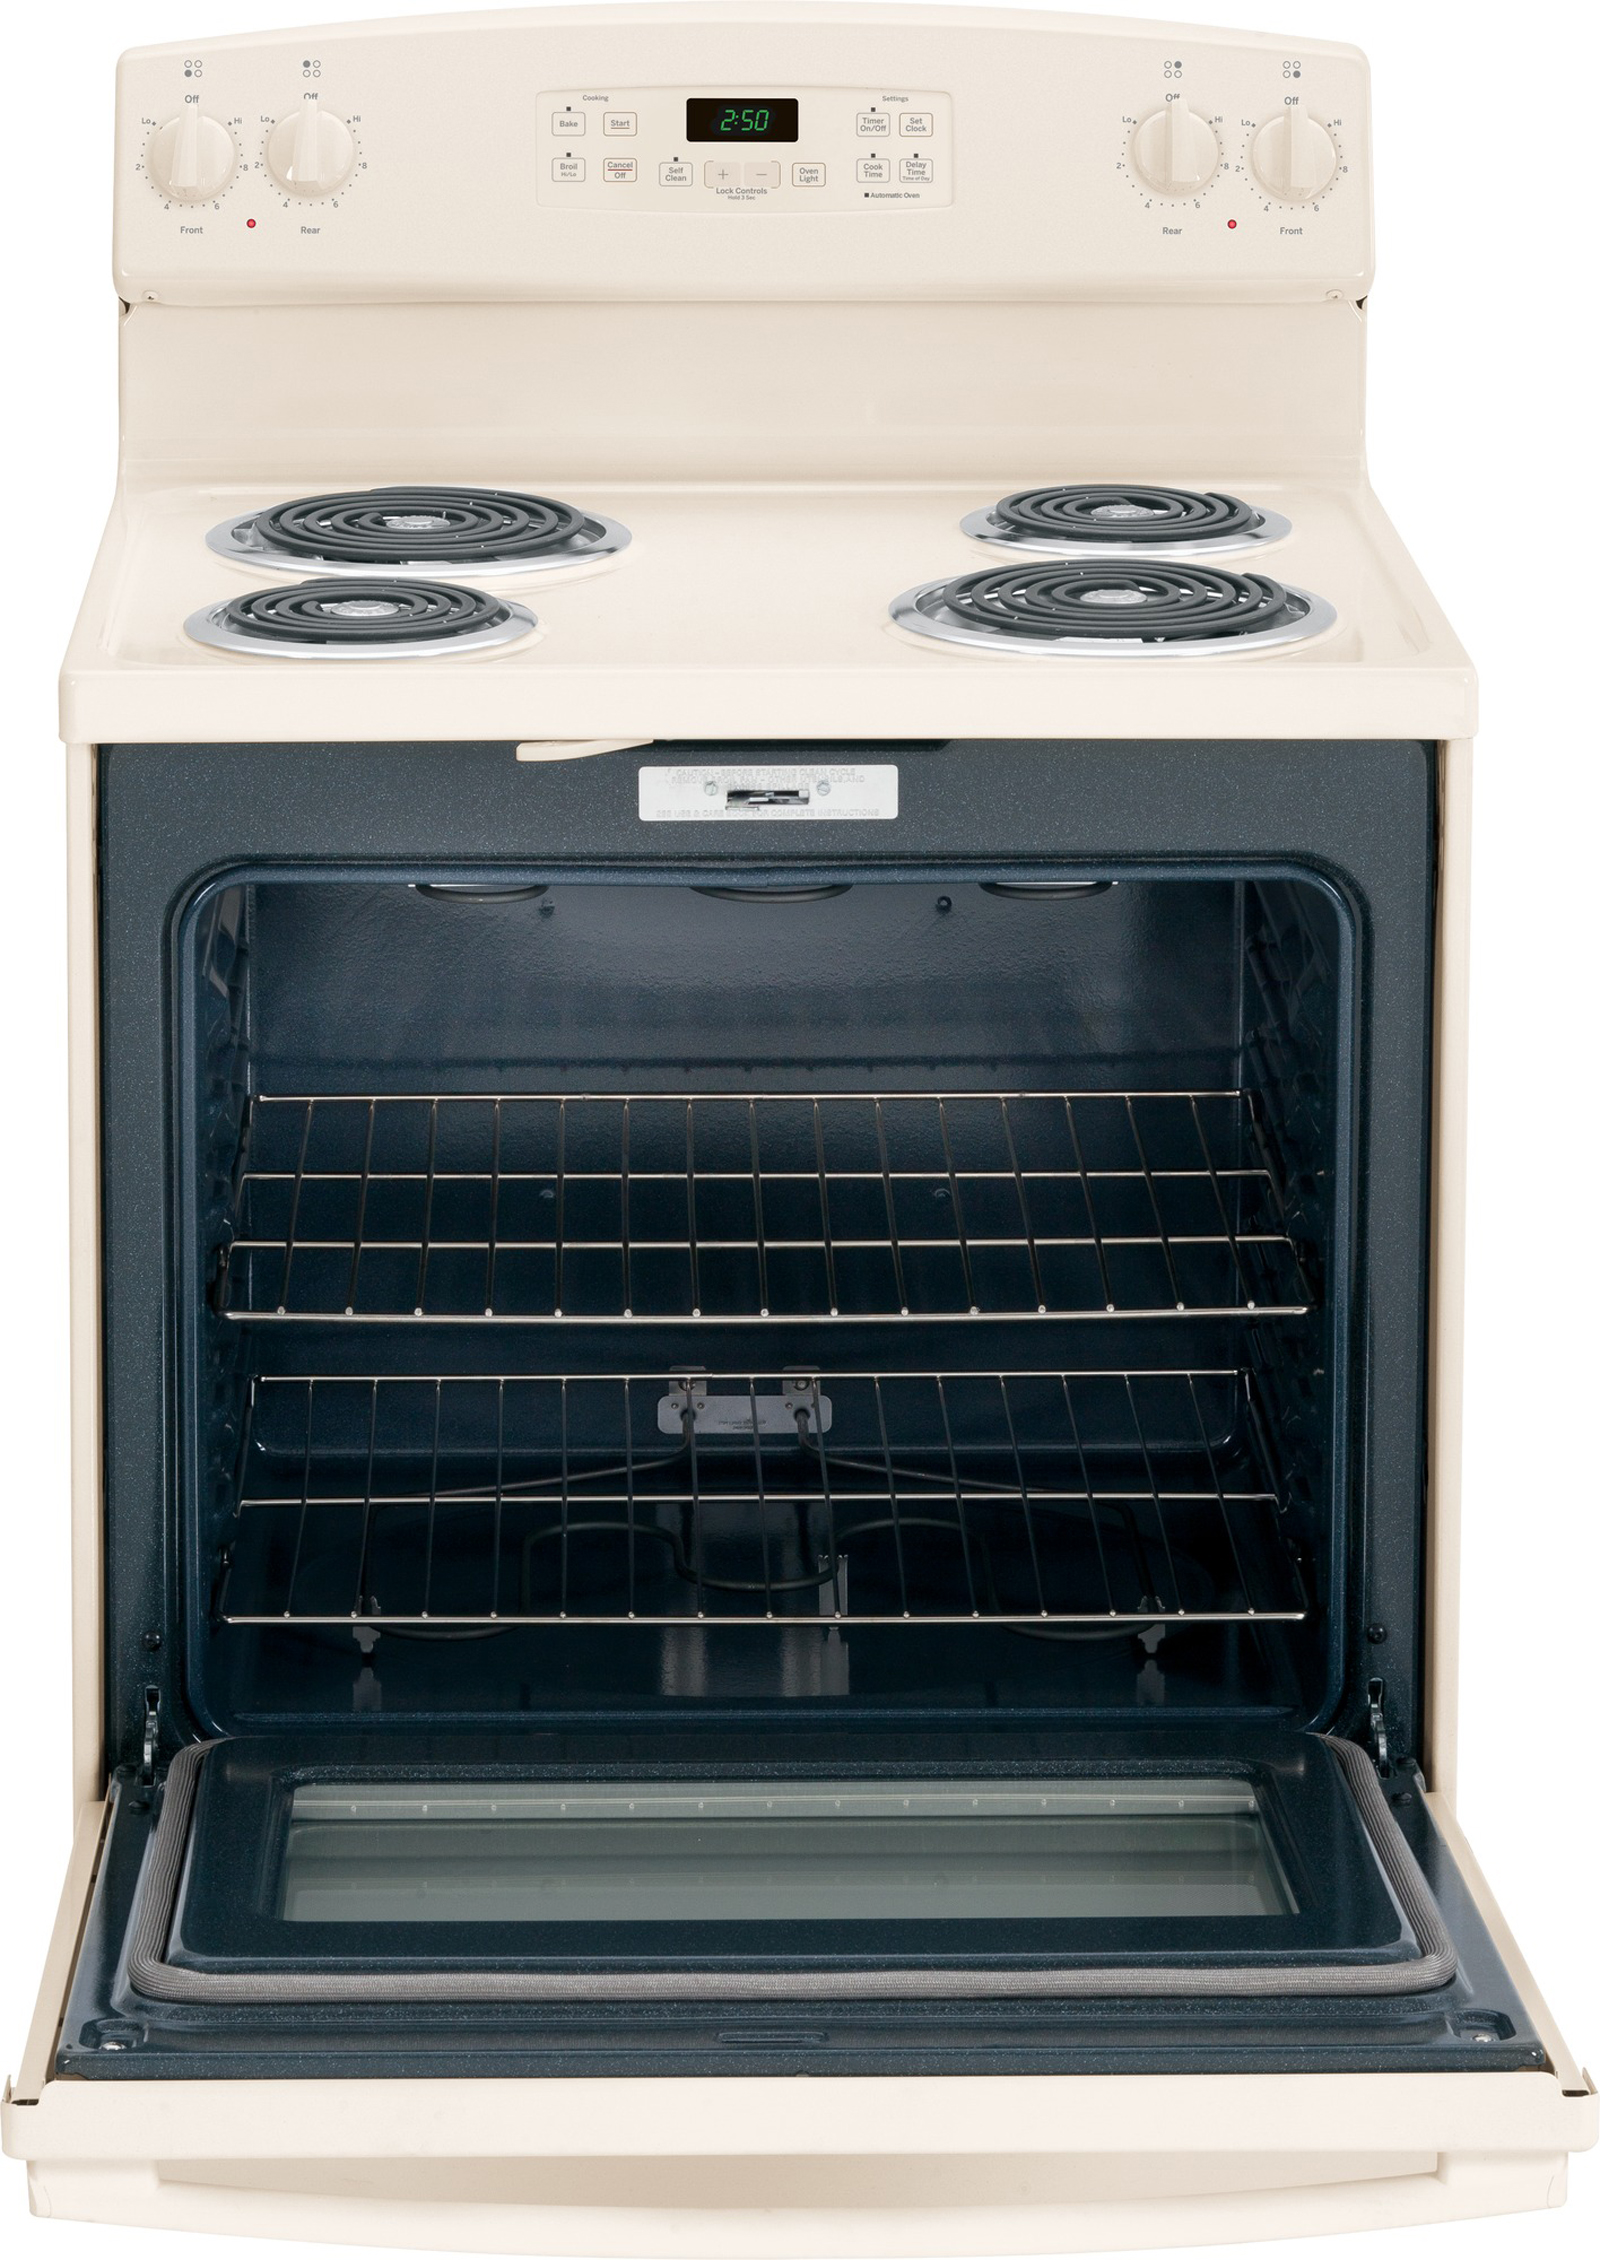 GE Appliances JB250DFCC 5.3 cu. ft. Free-Standing Electric Range - Bisque